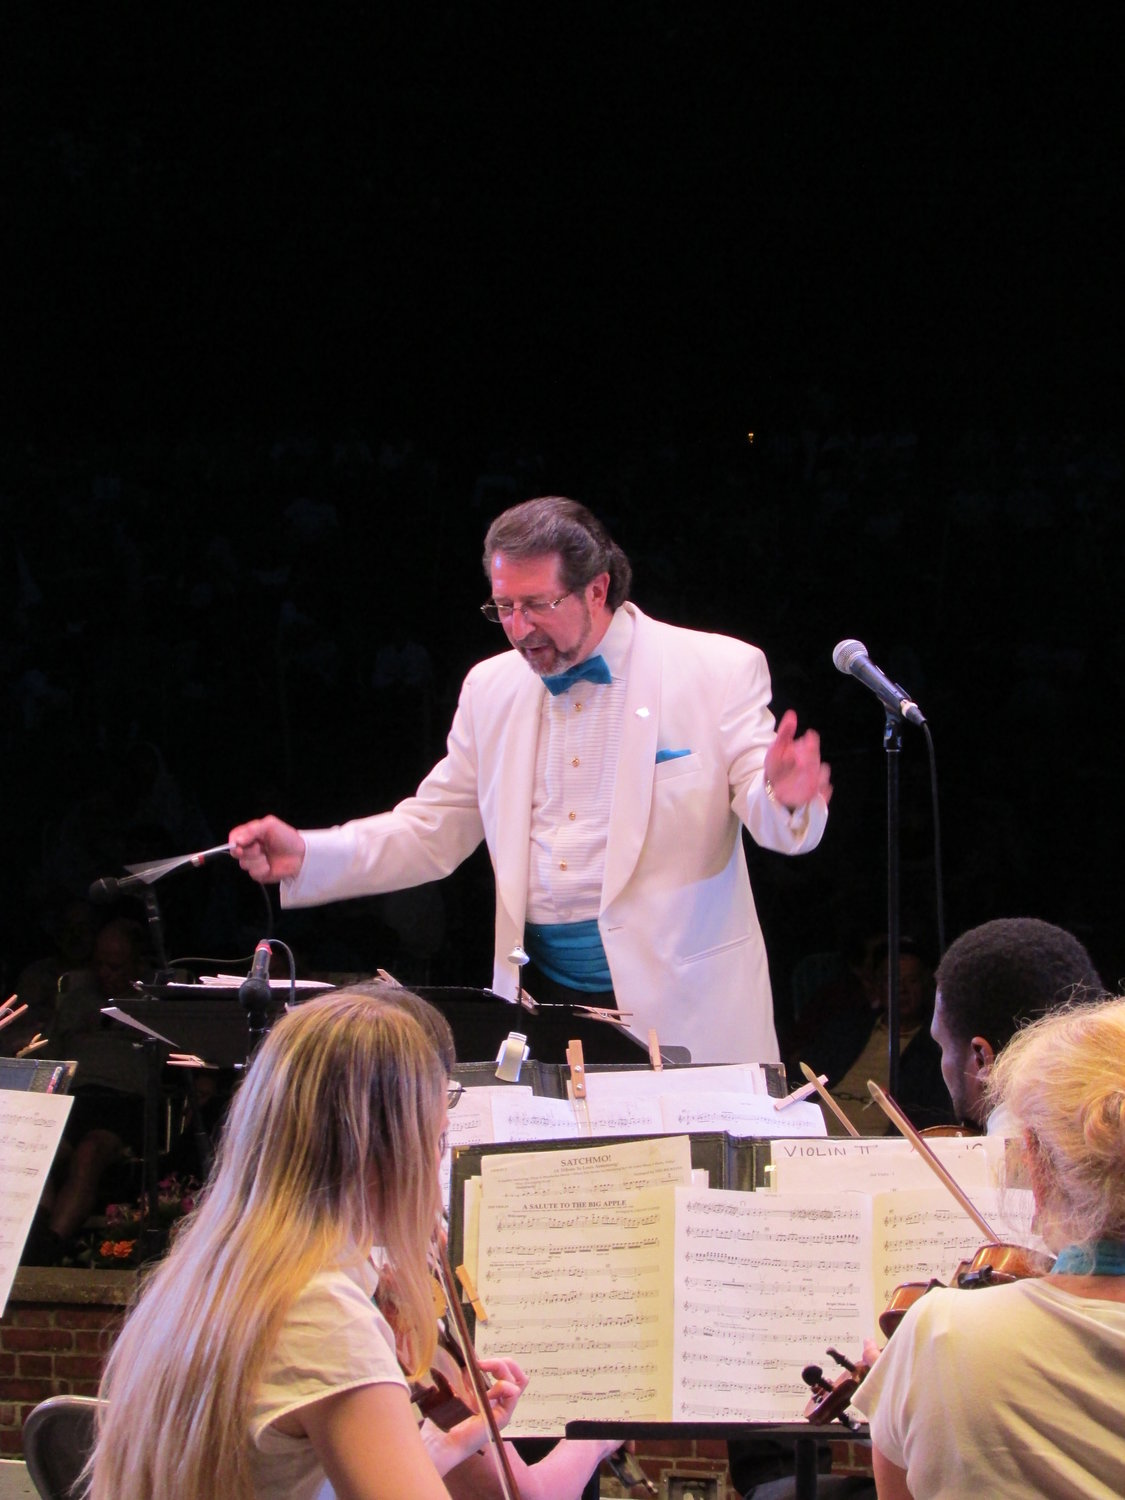 The Nassau Pops performs in Lynbrook on Friday as part of its summer concert season in local parks.